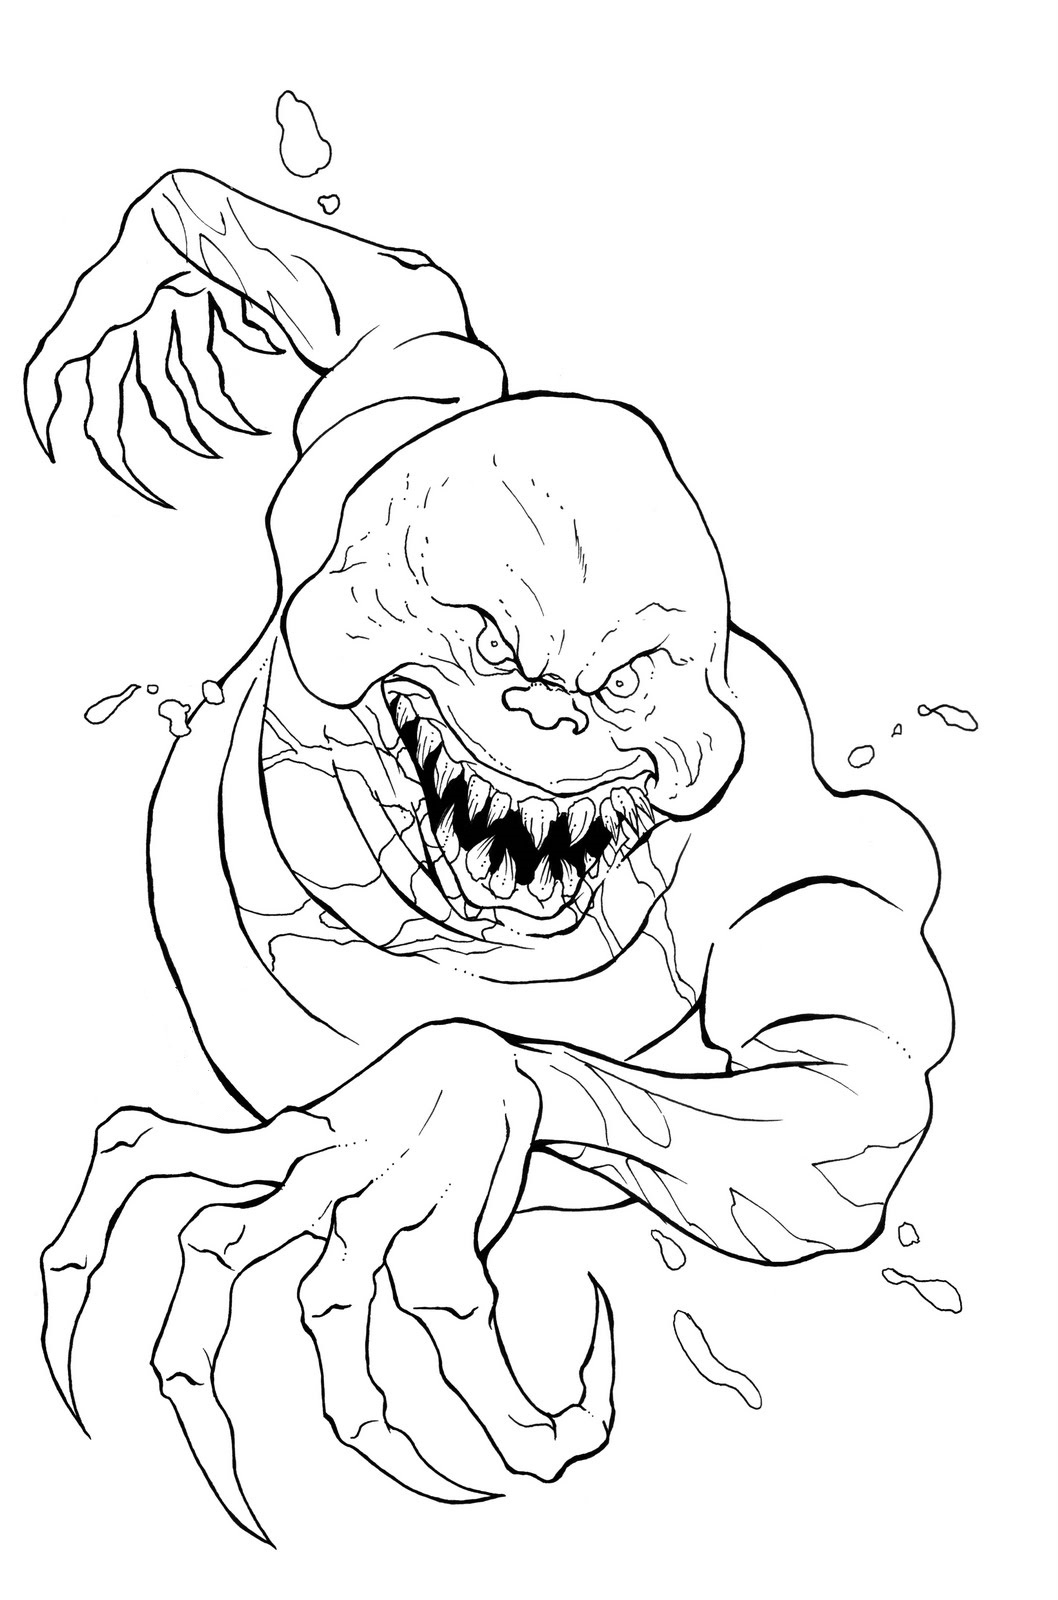 Ghostbusters Coloring Pages For Kids